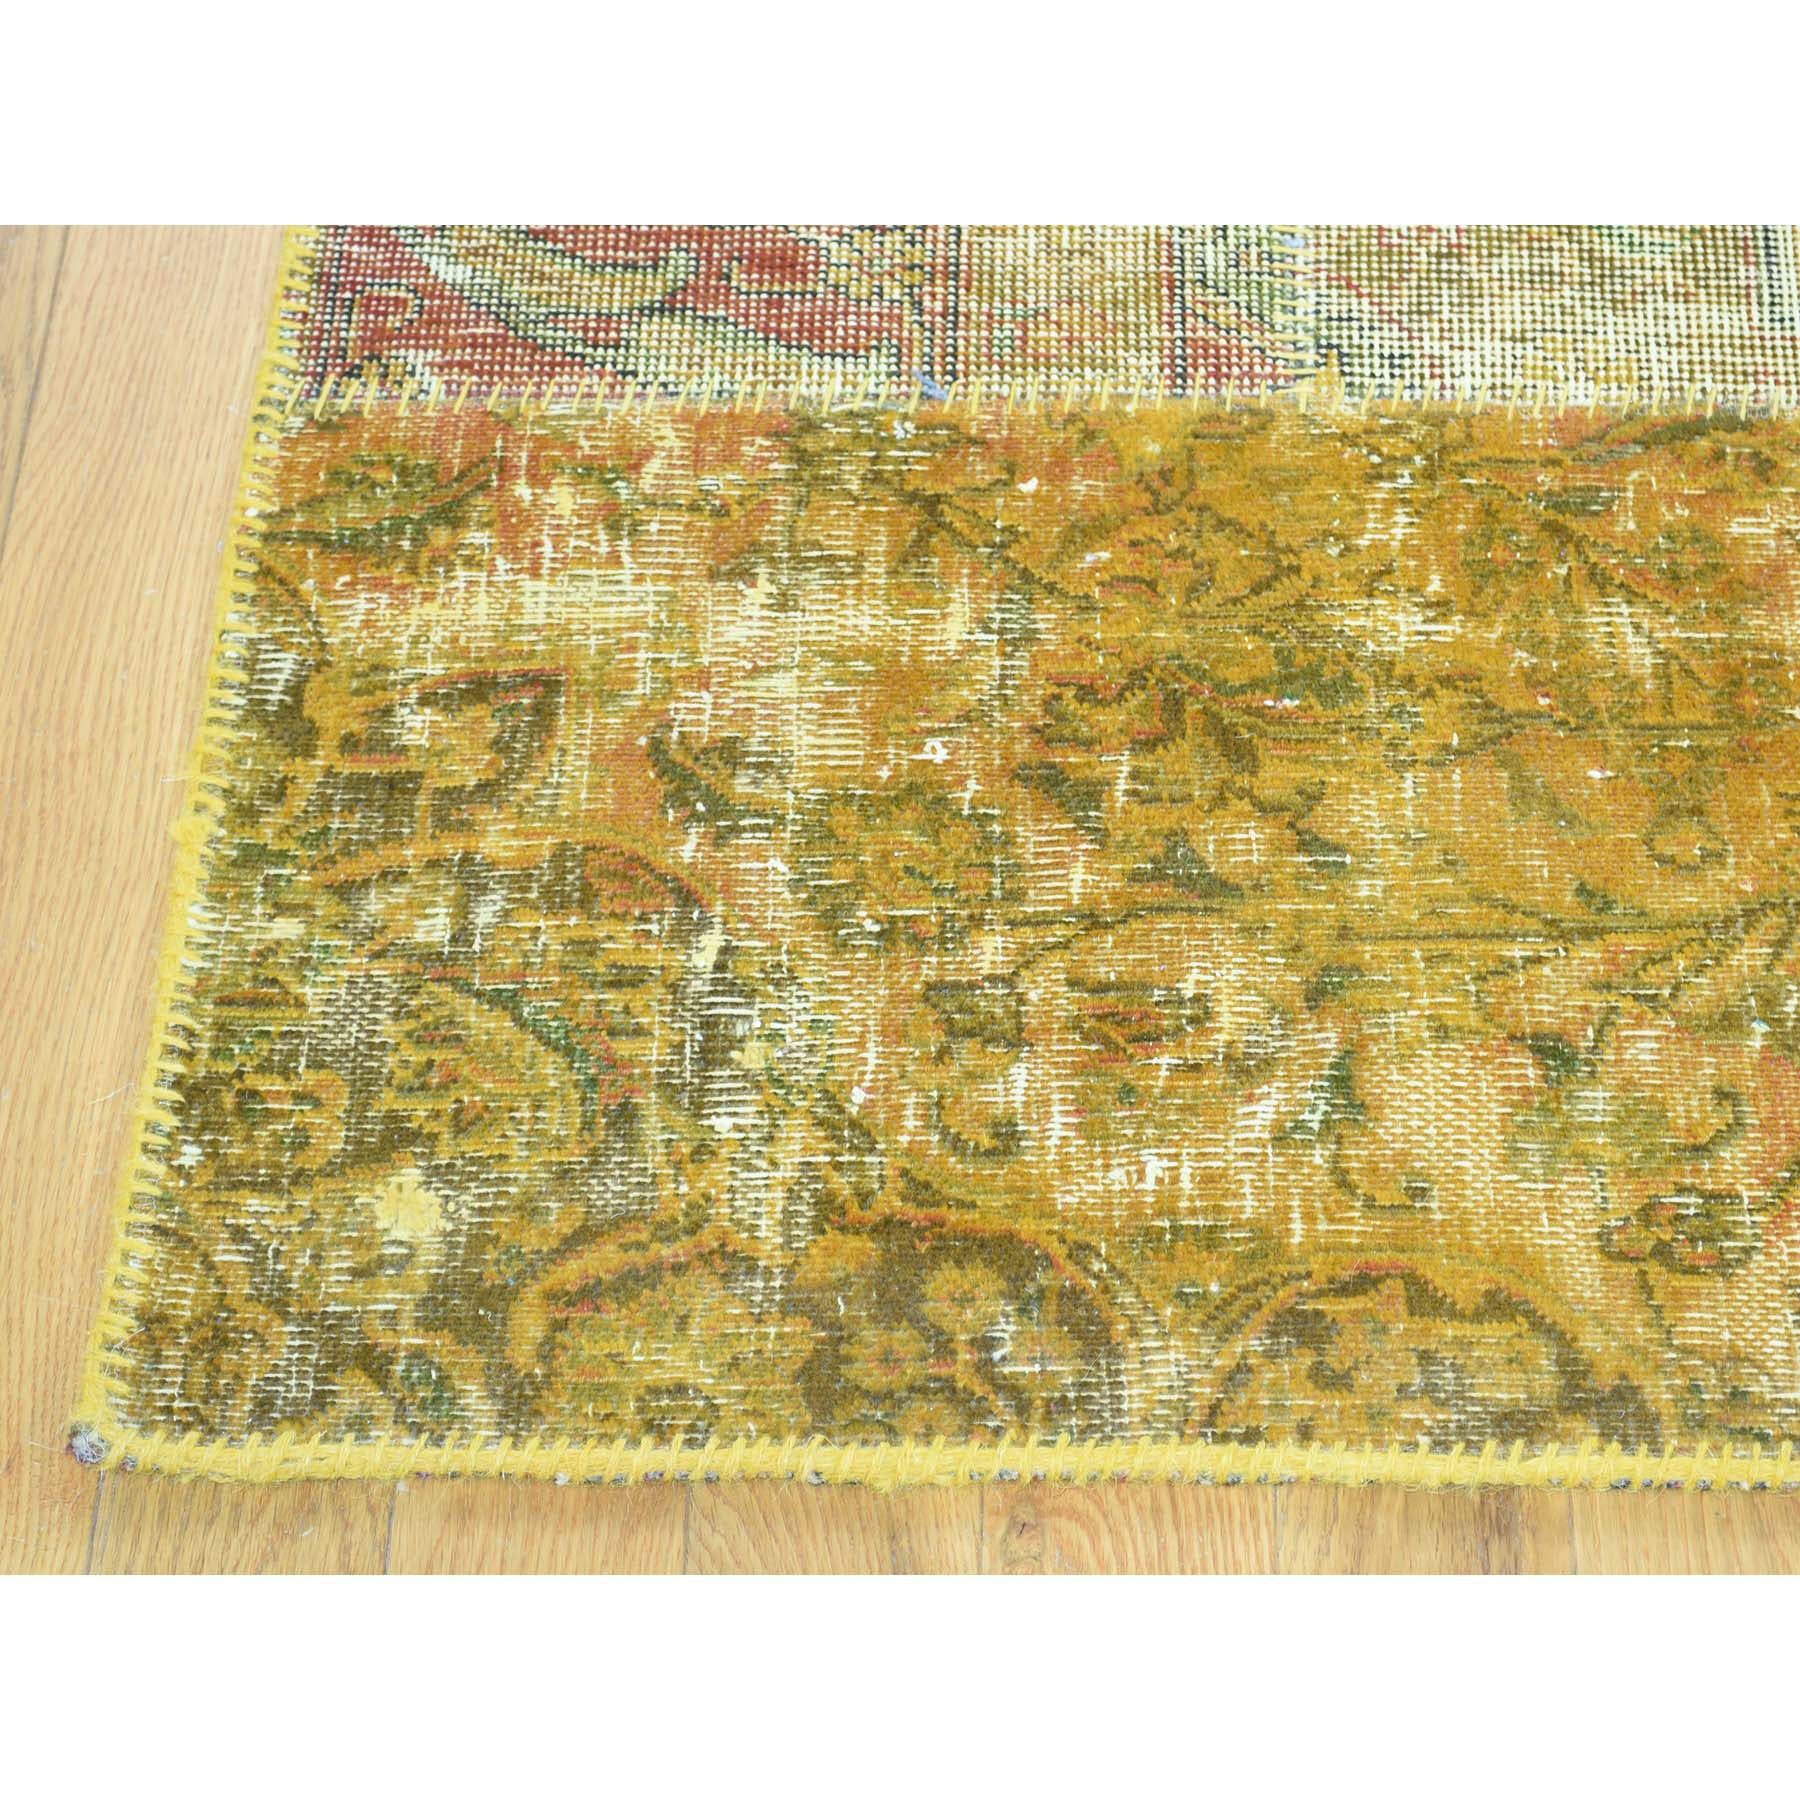 "Handmade Overdyed & Vintage Rectangle Rug > Design# SH31976 > Size: 5'-1"" x 8'-0"" [ONLINE ONLY]"